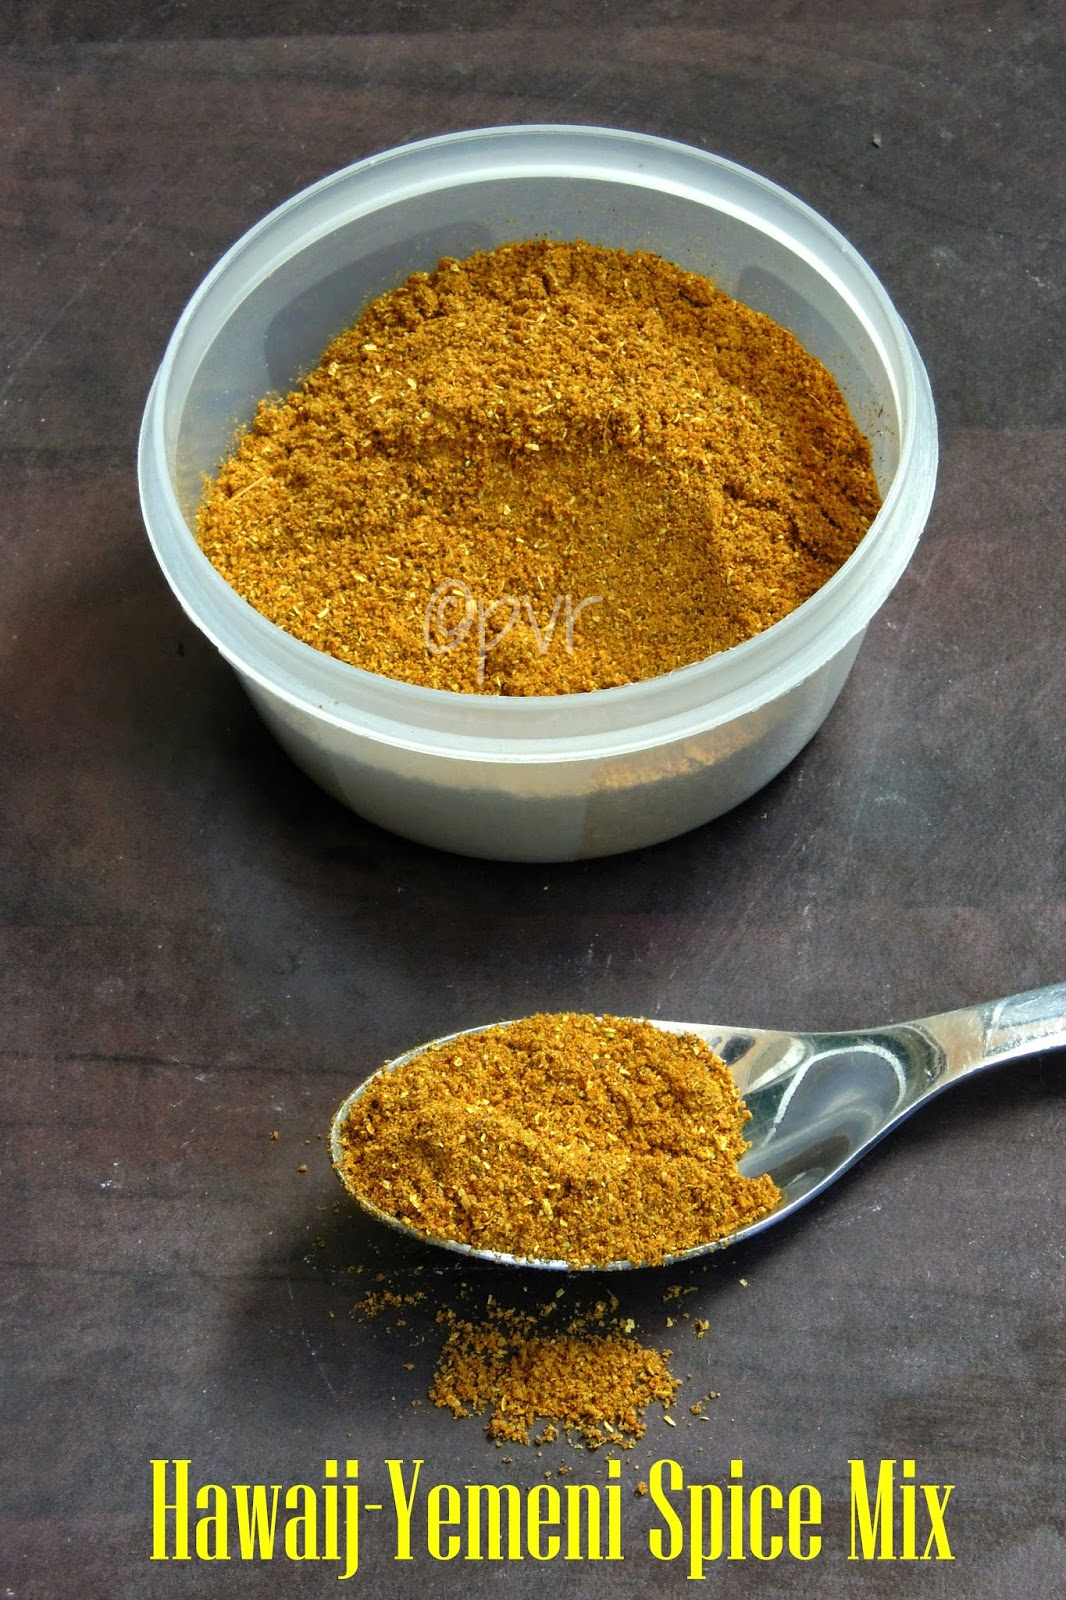 Yemeni Spice Mix,Hawaij, Yemeni Vegan Spice Powder